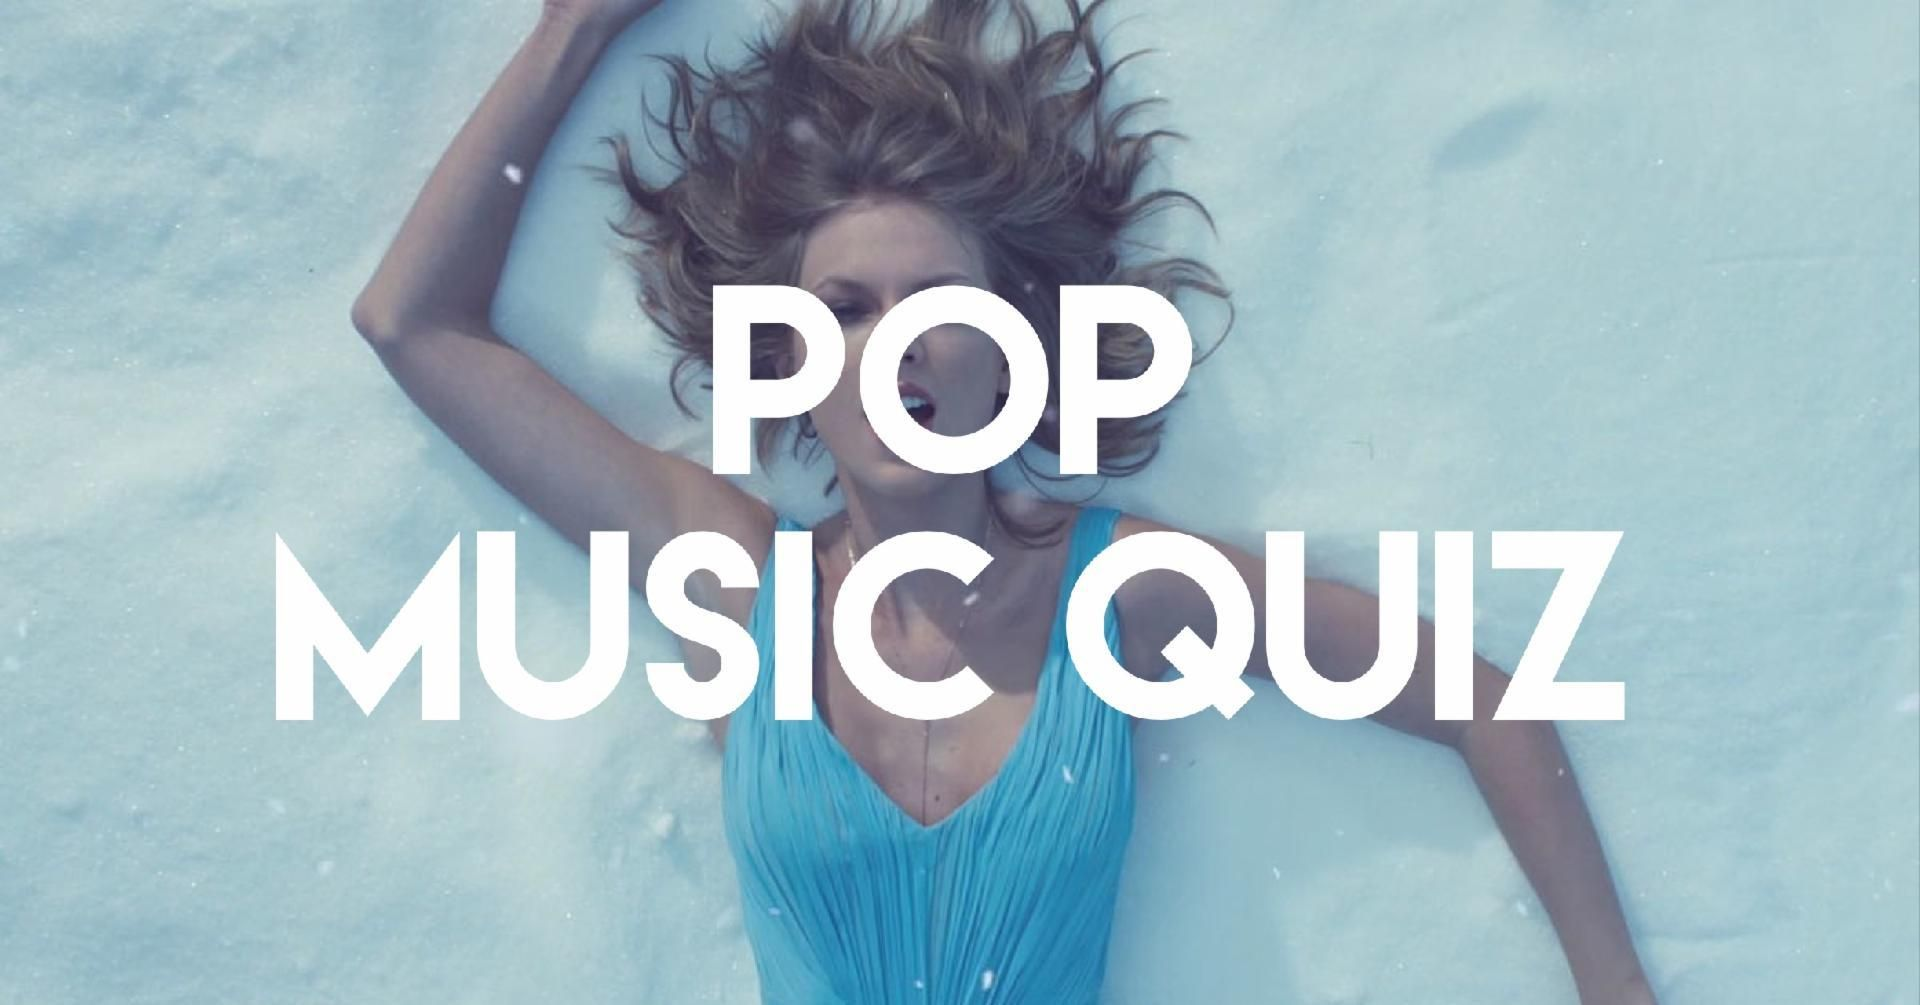 Check out this Kahoot called 'POP Music Quiz' on